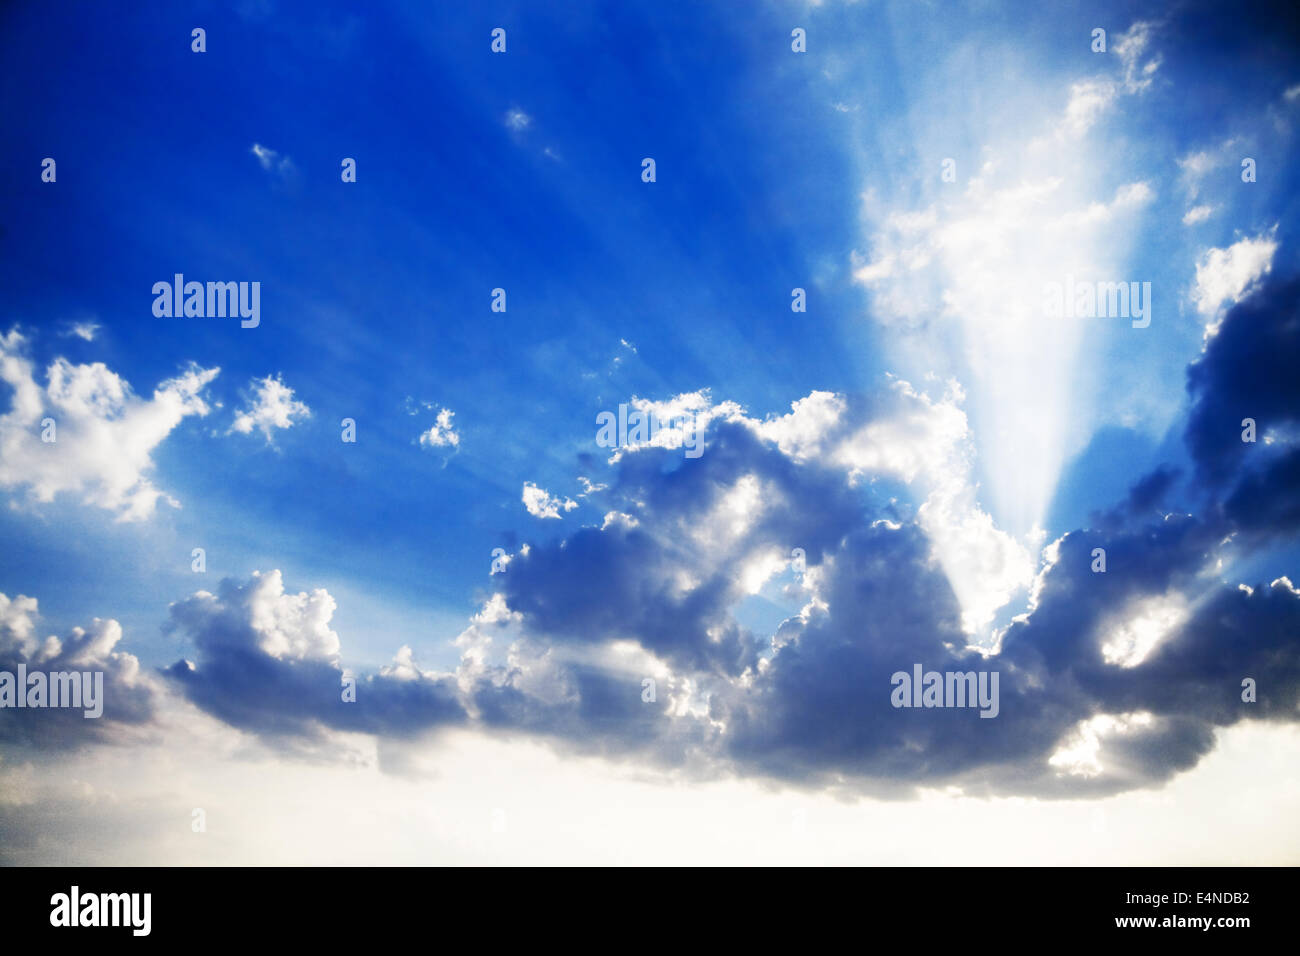 blue cloudy sky and bright sun beams - Stock Image